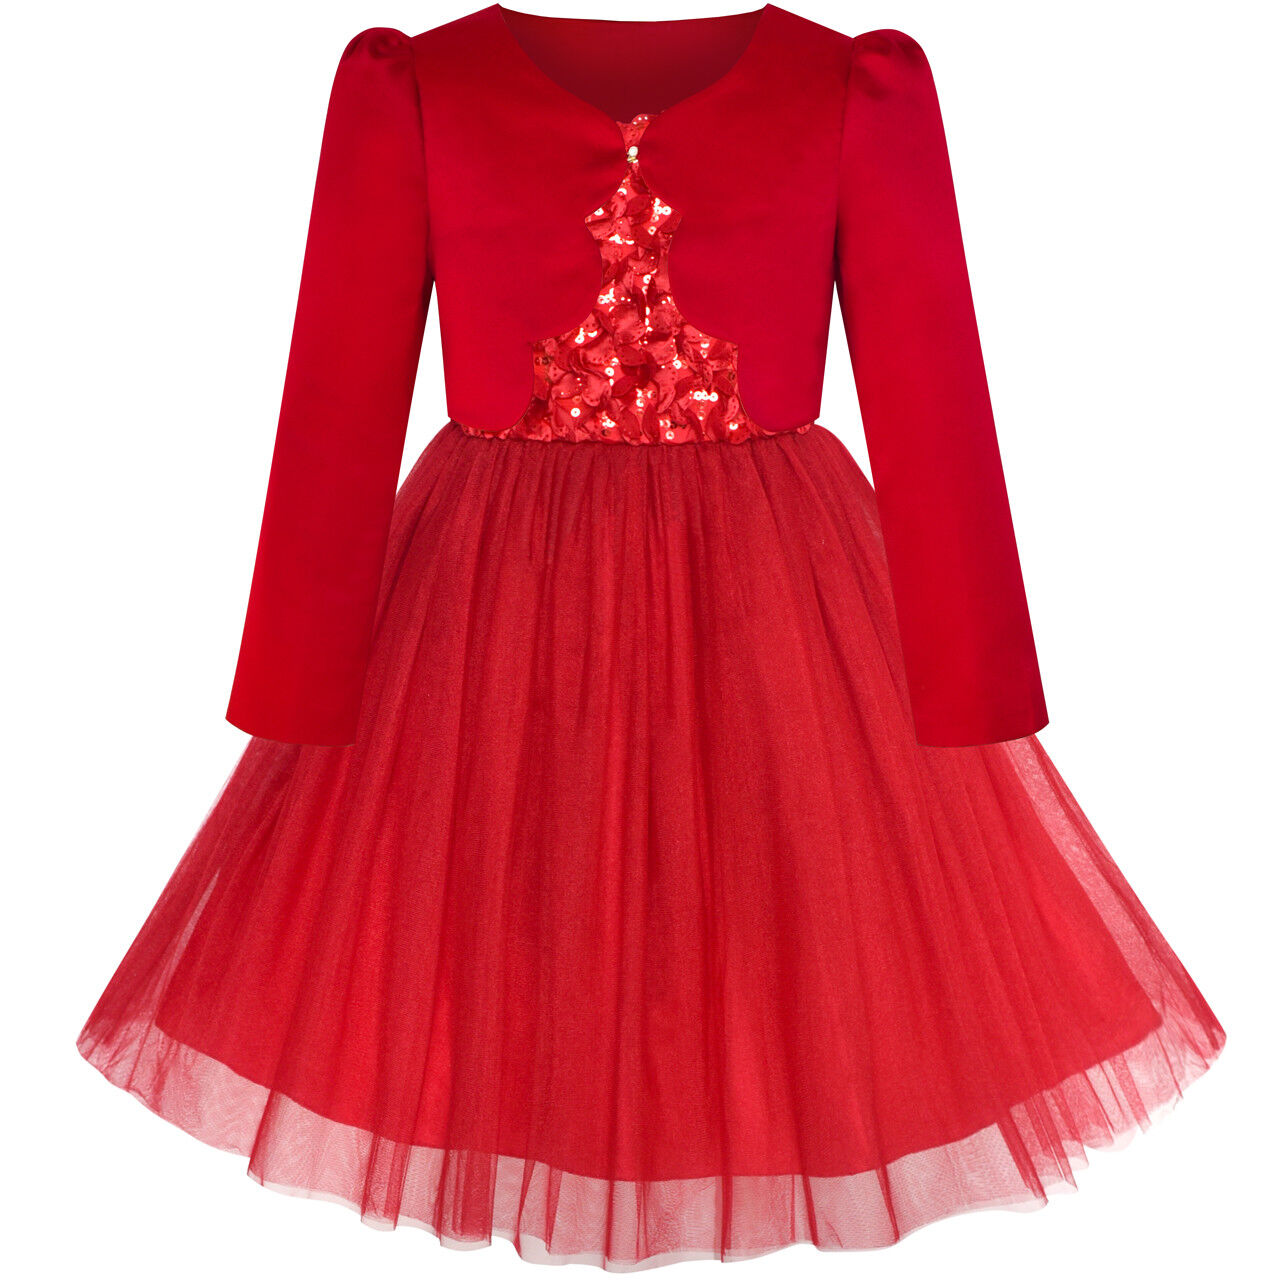 Bridesmaid Flower Girls Pageant Dress+Bolero in 6 Colours from 2 to 12 Years